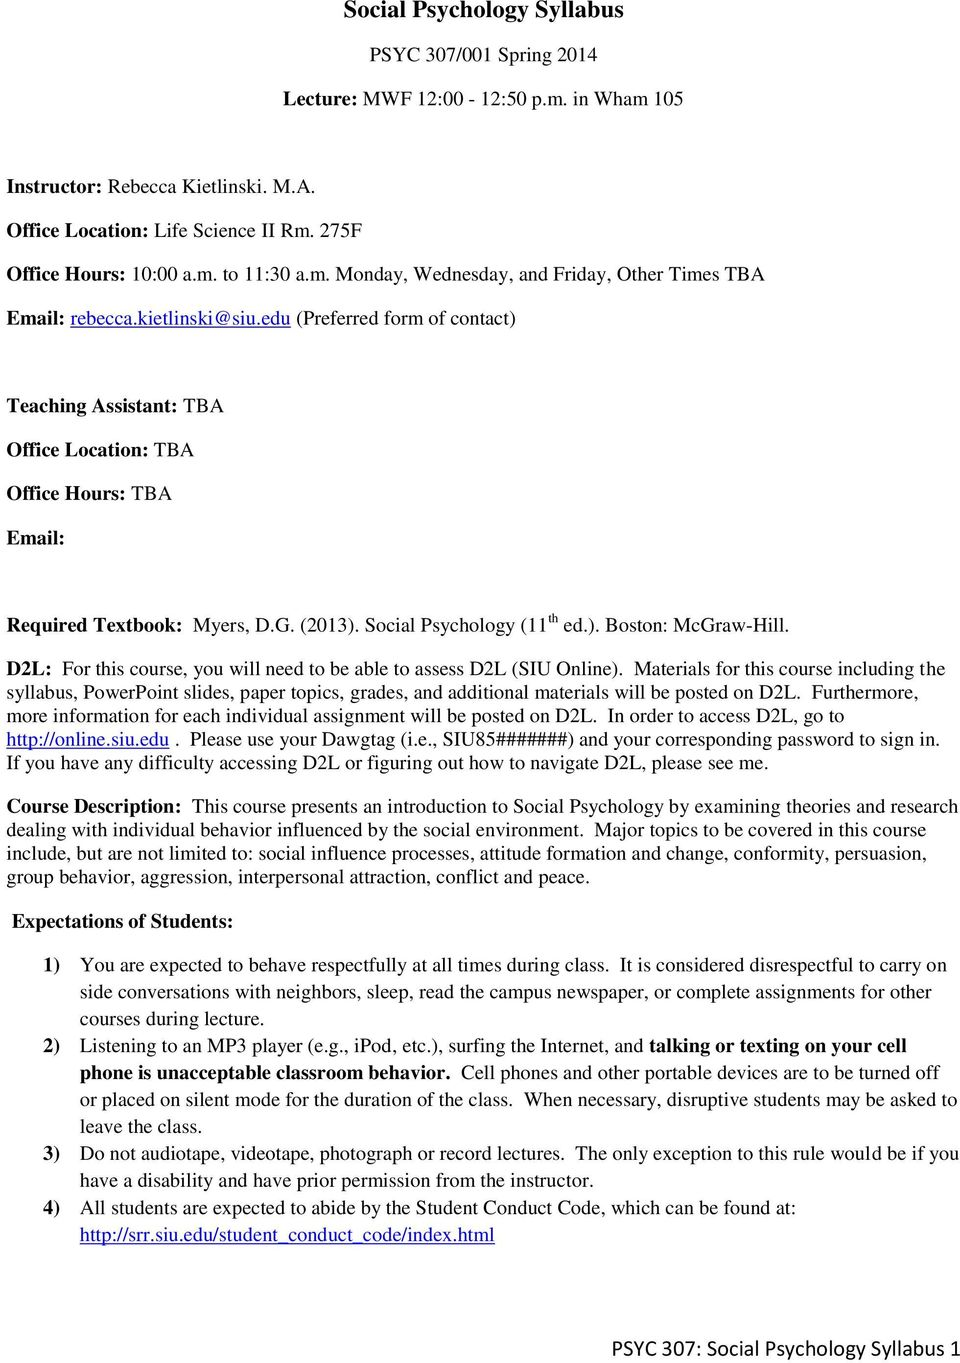 edu (Preferred form of contact) Teaching Assistant: TBA Office Location: TBA Office Hours: TBA Email: Required Textbook: Myers, D.G. (2013). Social Psychology (11 th ed.). Boston: McGraw-Hill.